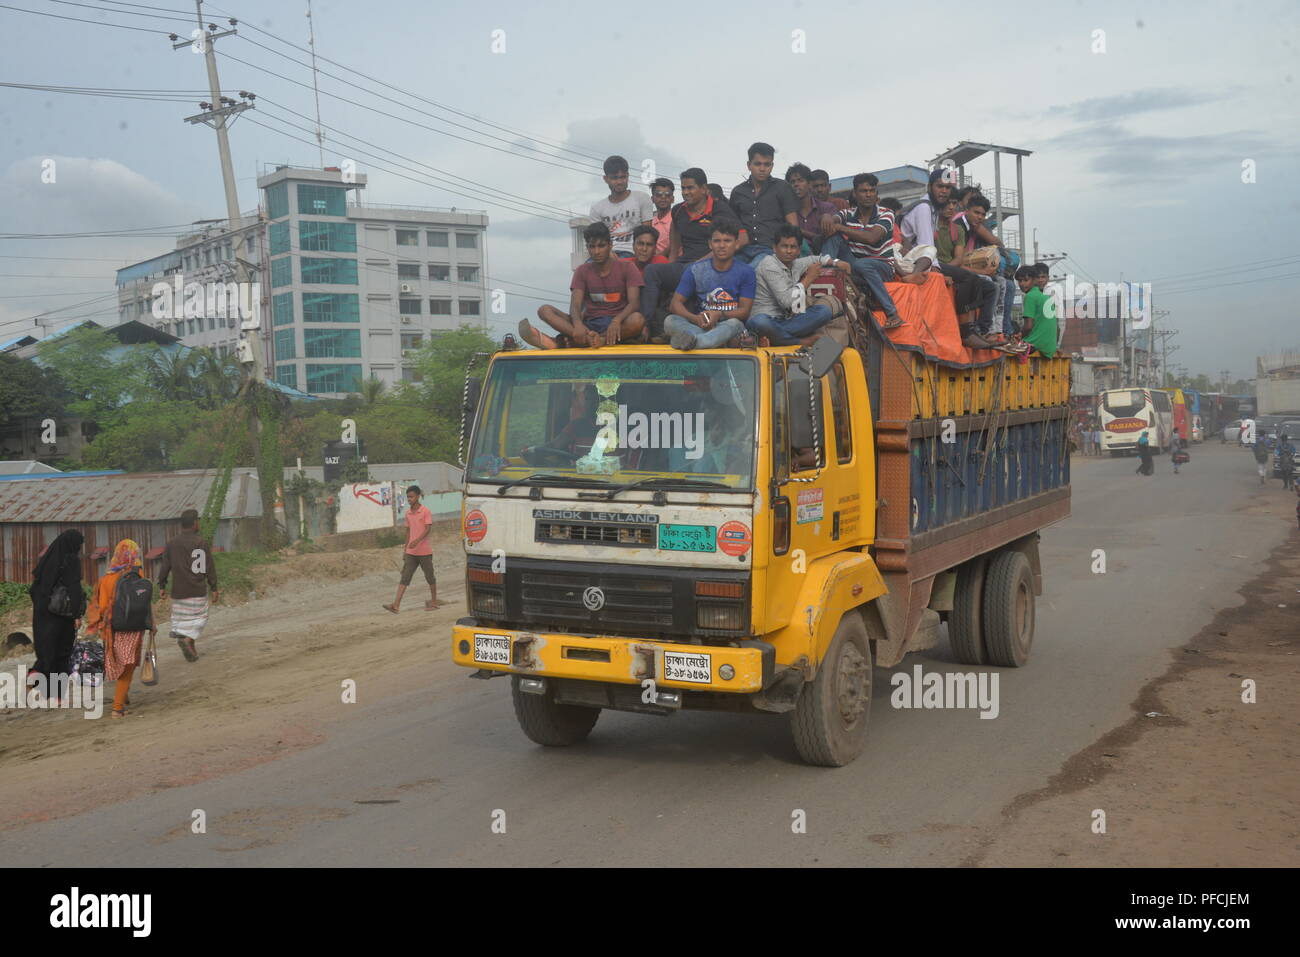 Dhaka. 21st Aug, 2018. Homebound travelers travel on a truck in Dhaka, Bangladesh, on Aug. 20, 2018, during the Eid al-Adha festival. Credit: Xinhua/Alamy Live News - Stock Image